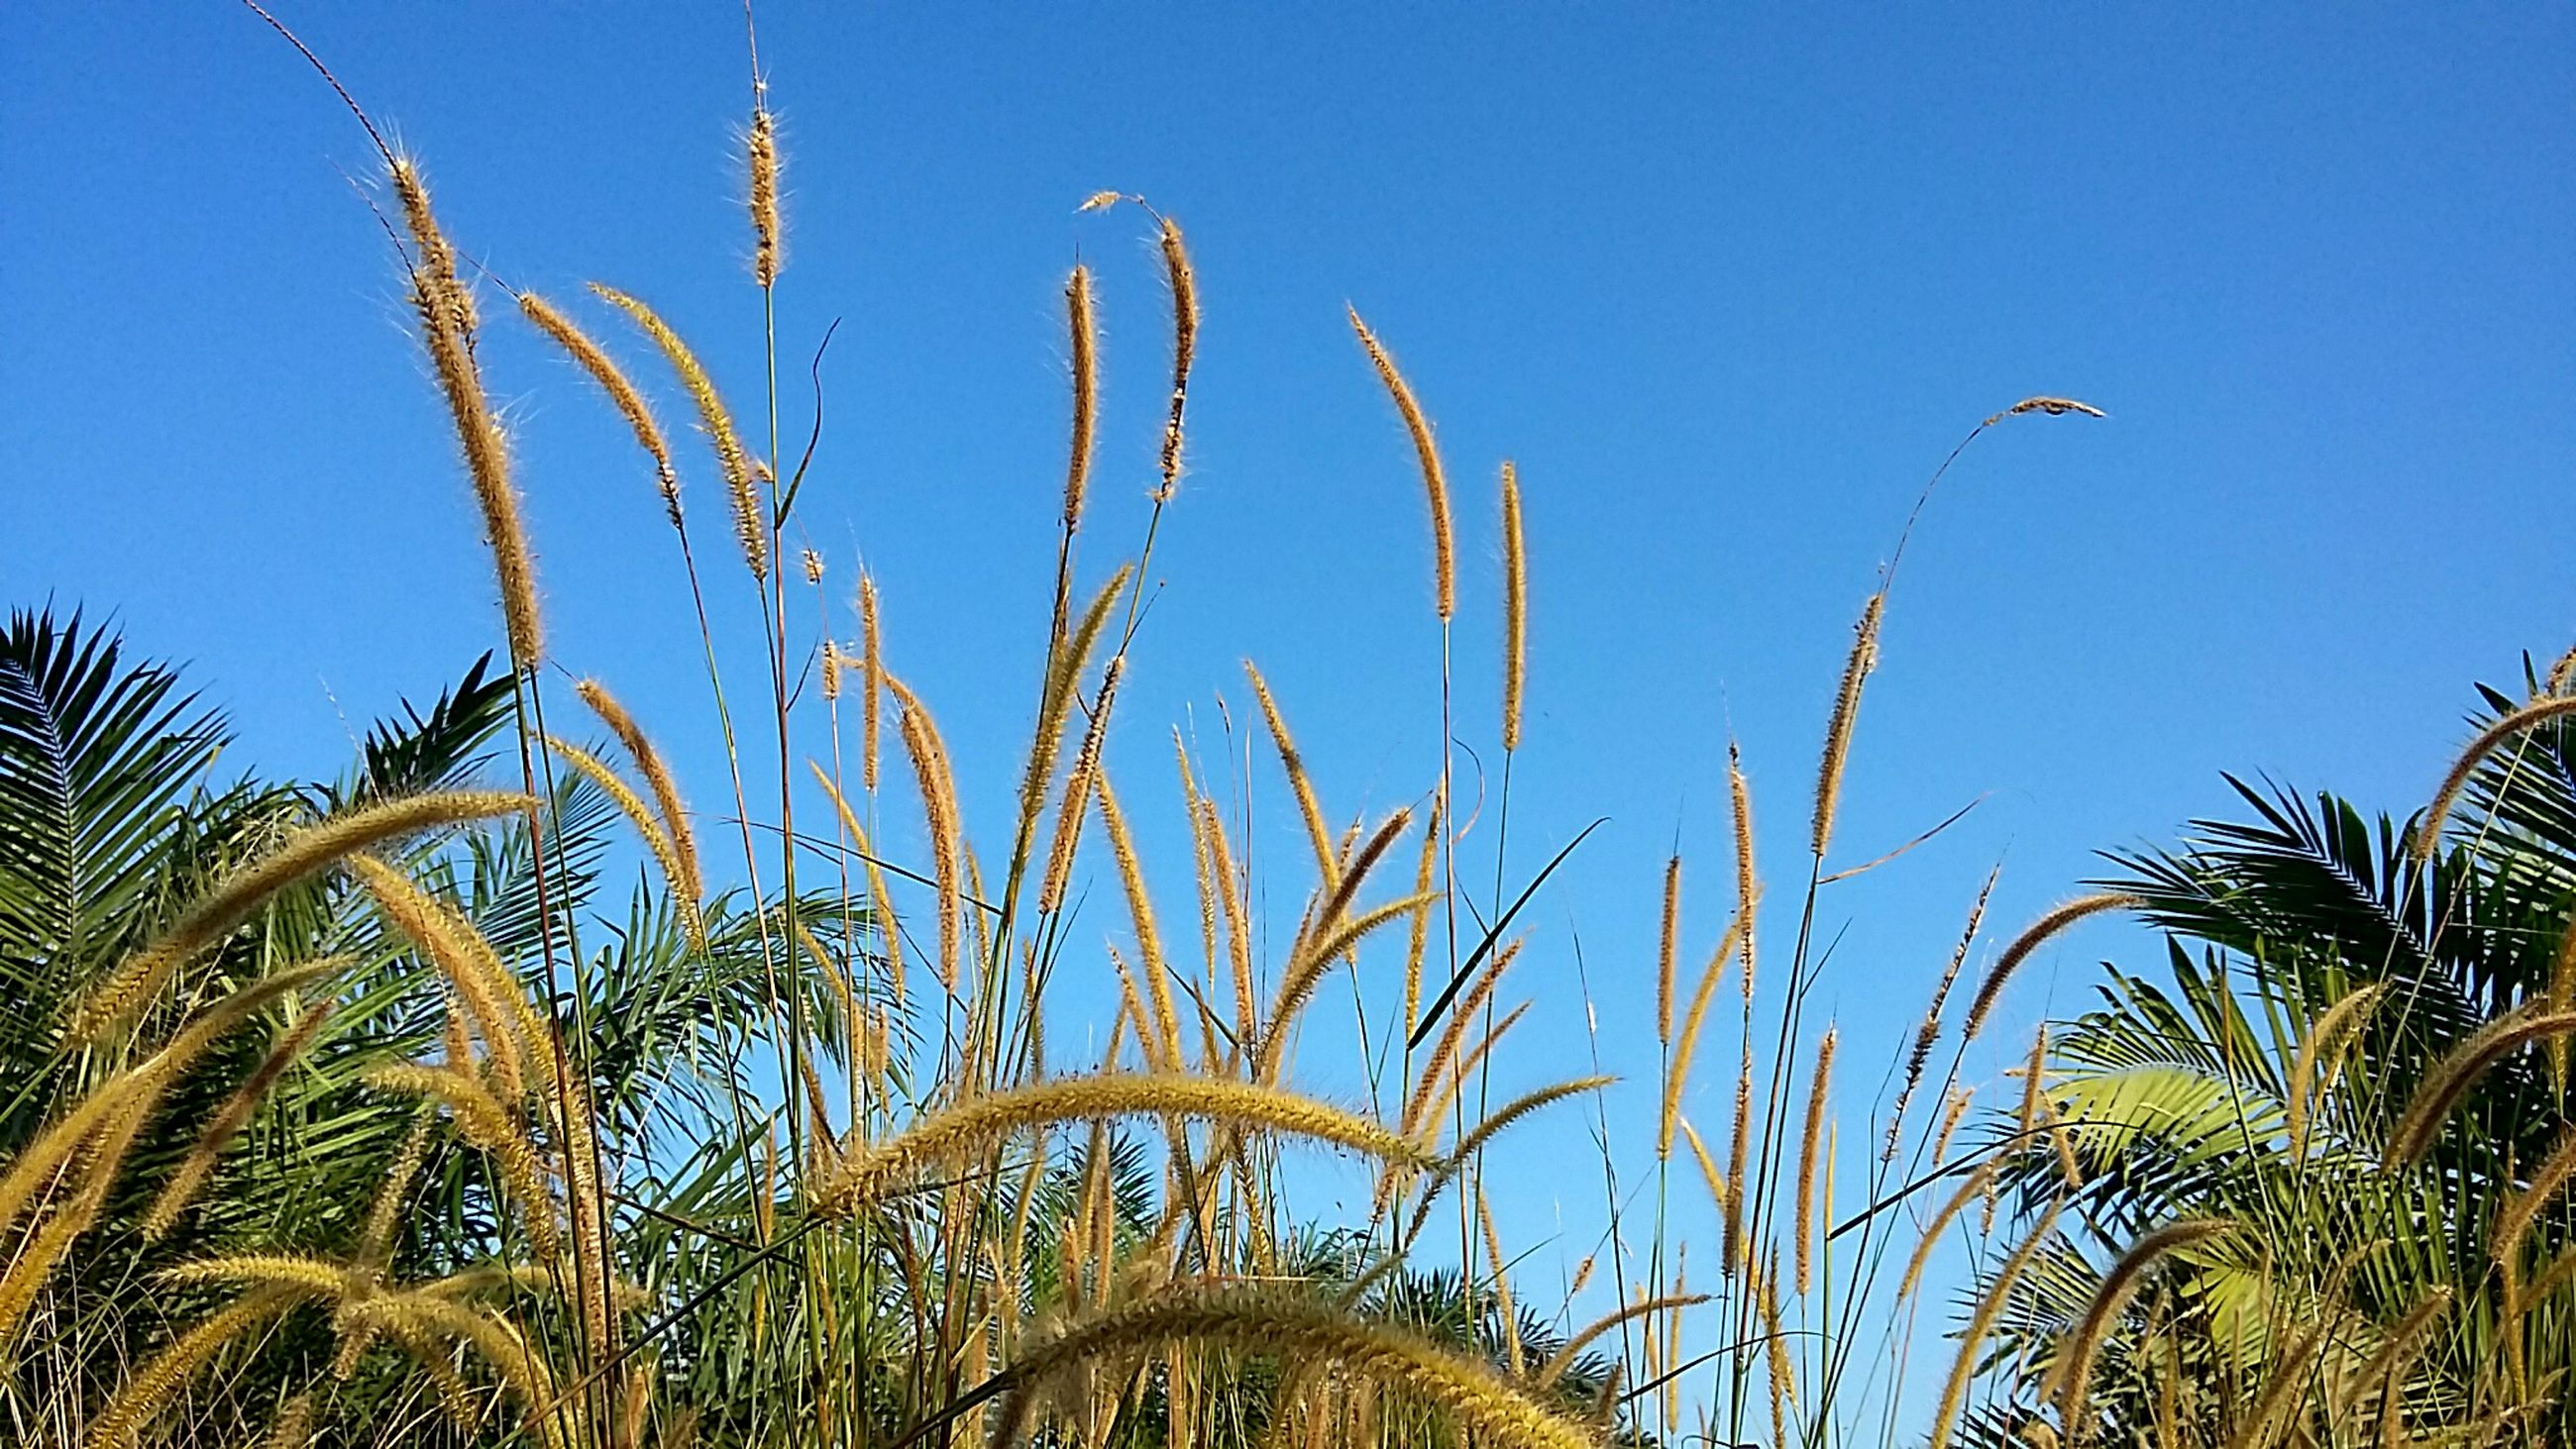 clear sky, growth, blue, low angle view, nature, tranquility, palm tree, plant, beauty in nature, copy space, grass, tranquil scene, tree, crop, day, outdoors, growing, scenics, no people, sky